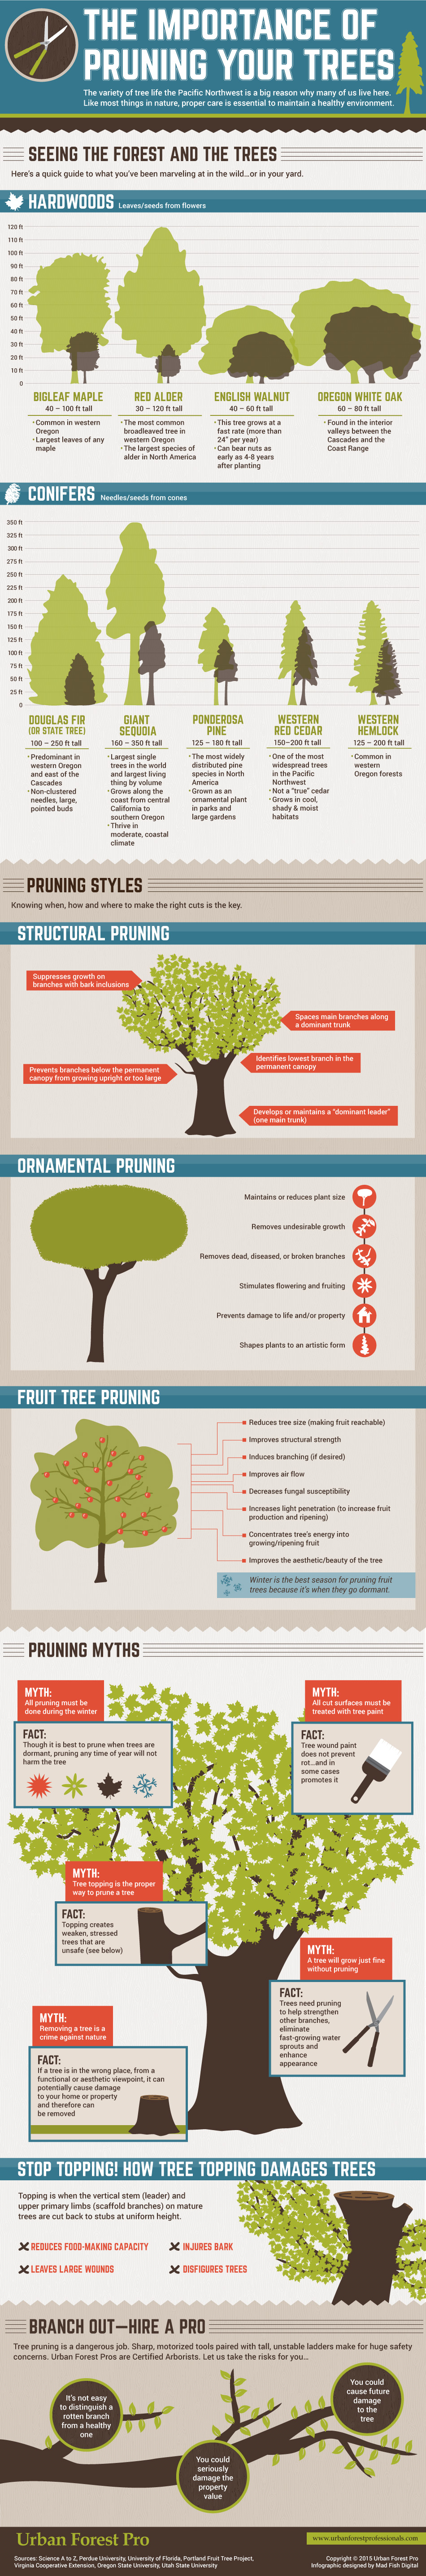 Tree pruning infographic